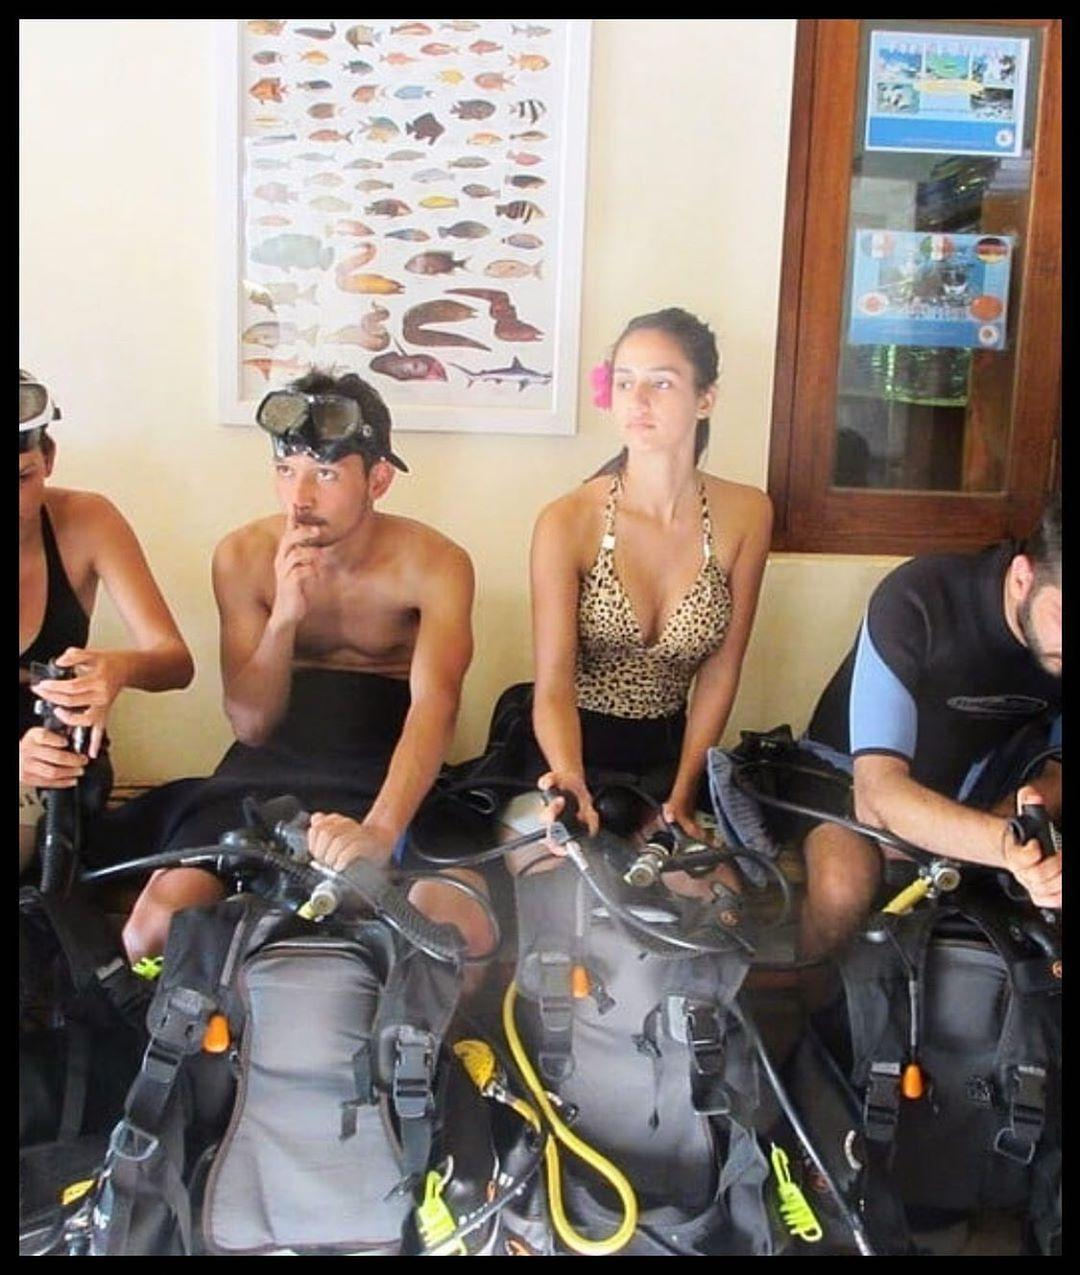 All set for scuba diving